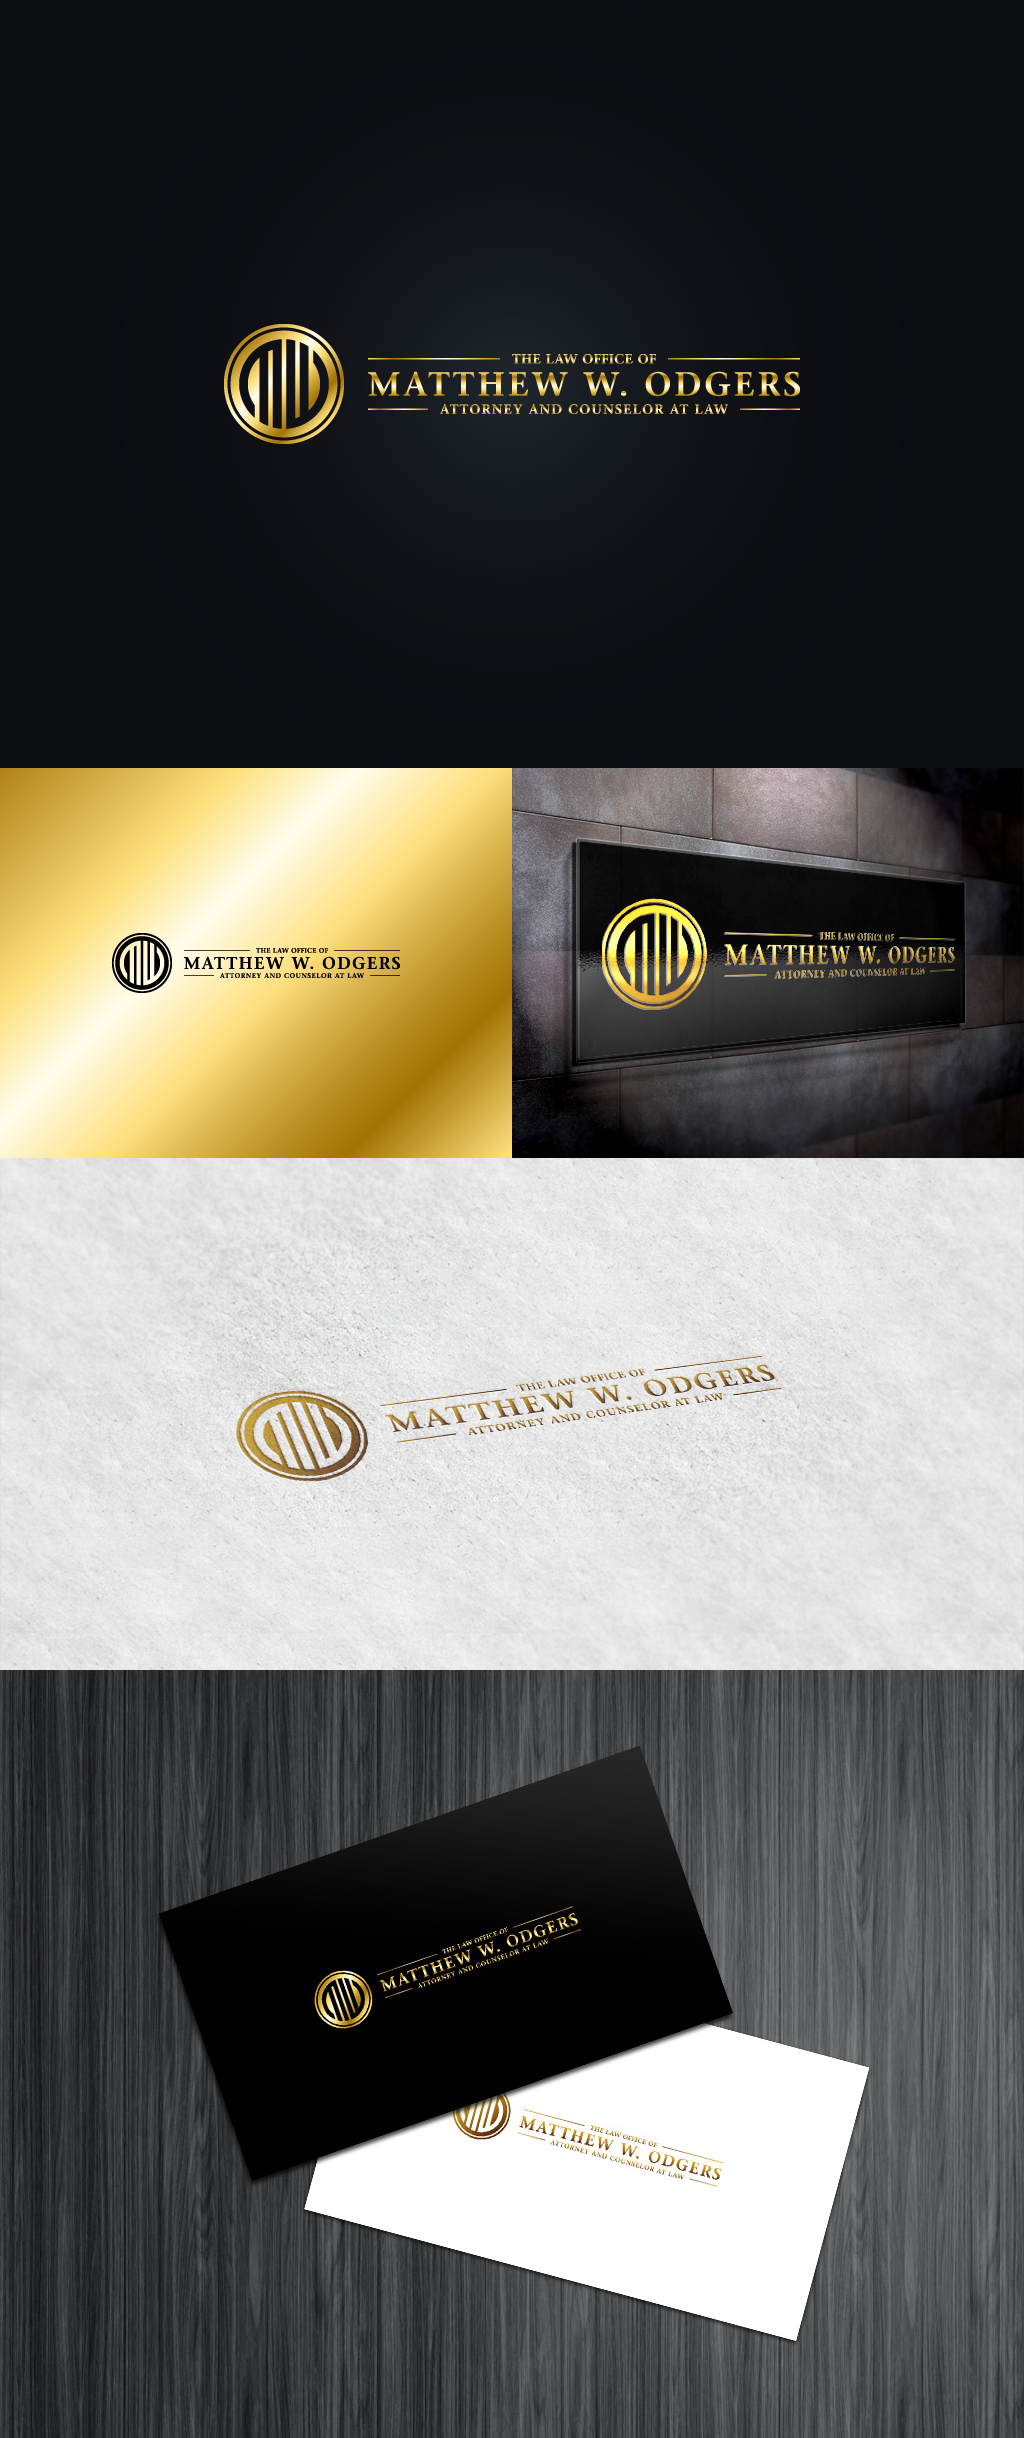 Create the next logo for Matthew W. Odgers, Attorney and Counselor at Law